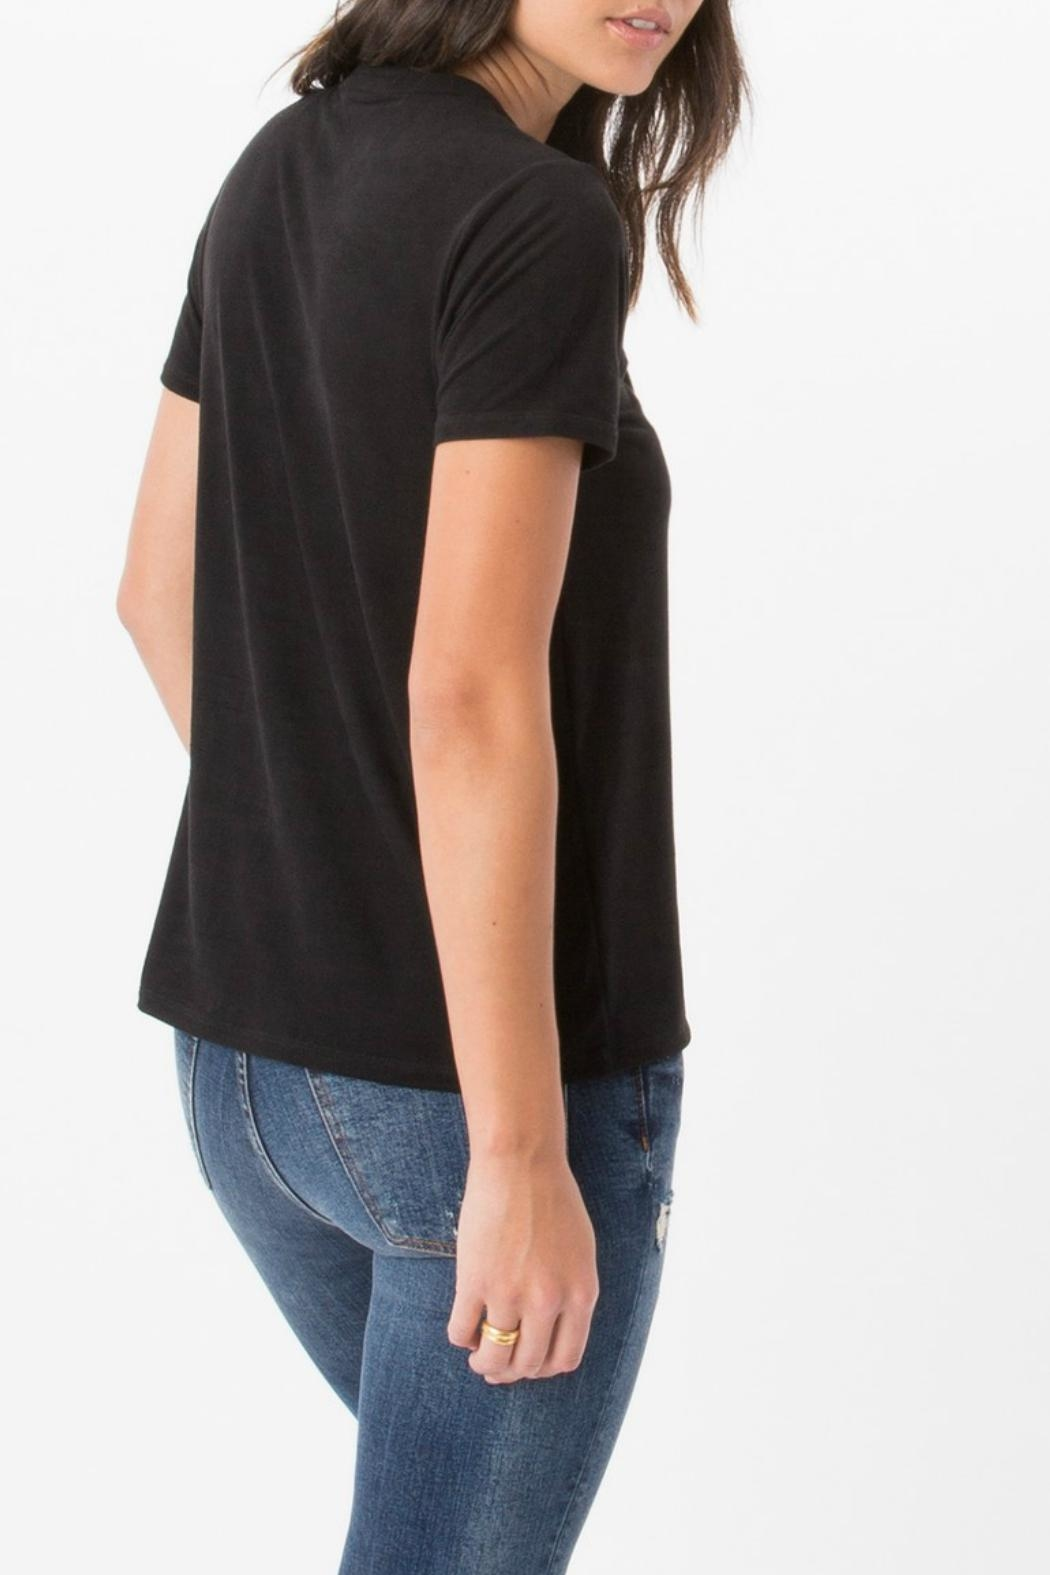 z supply Suede Lace Up Top - Side Cropped Image